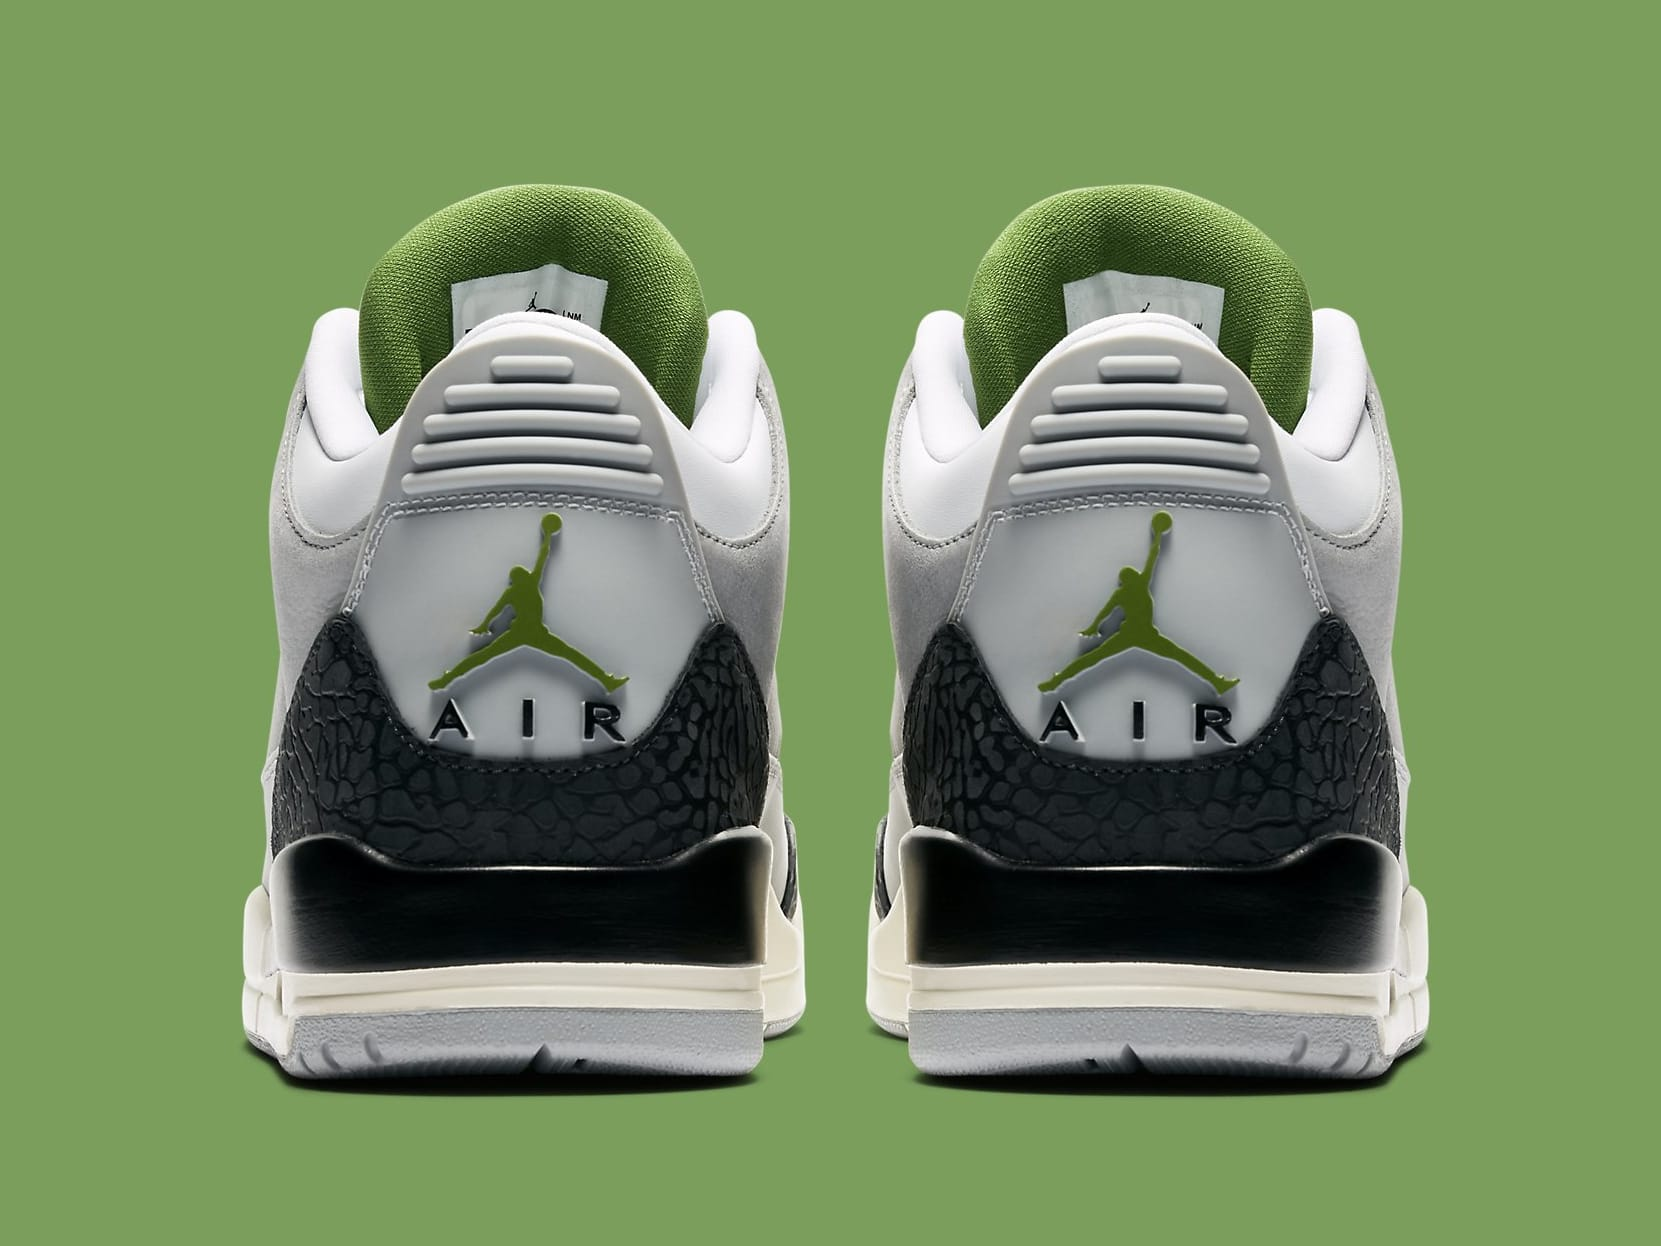 6949400bf9d Air Jordan 3 III Chlorophyll Release Date 136064-006 | Sole Collector